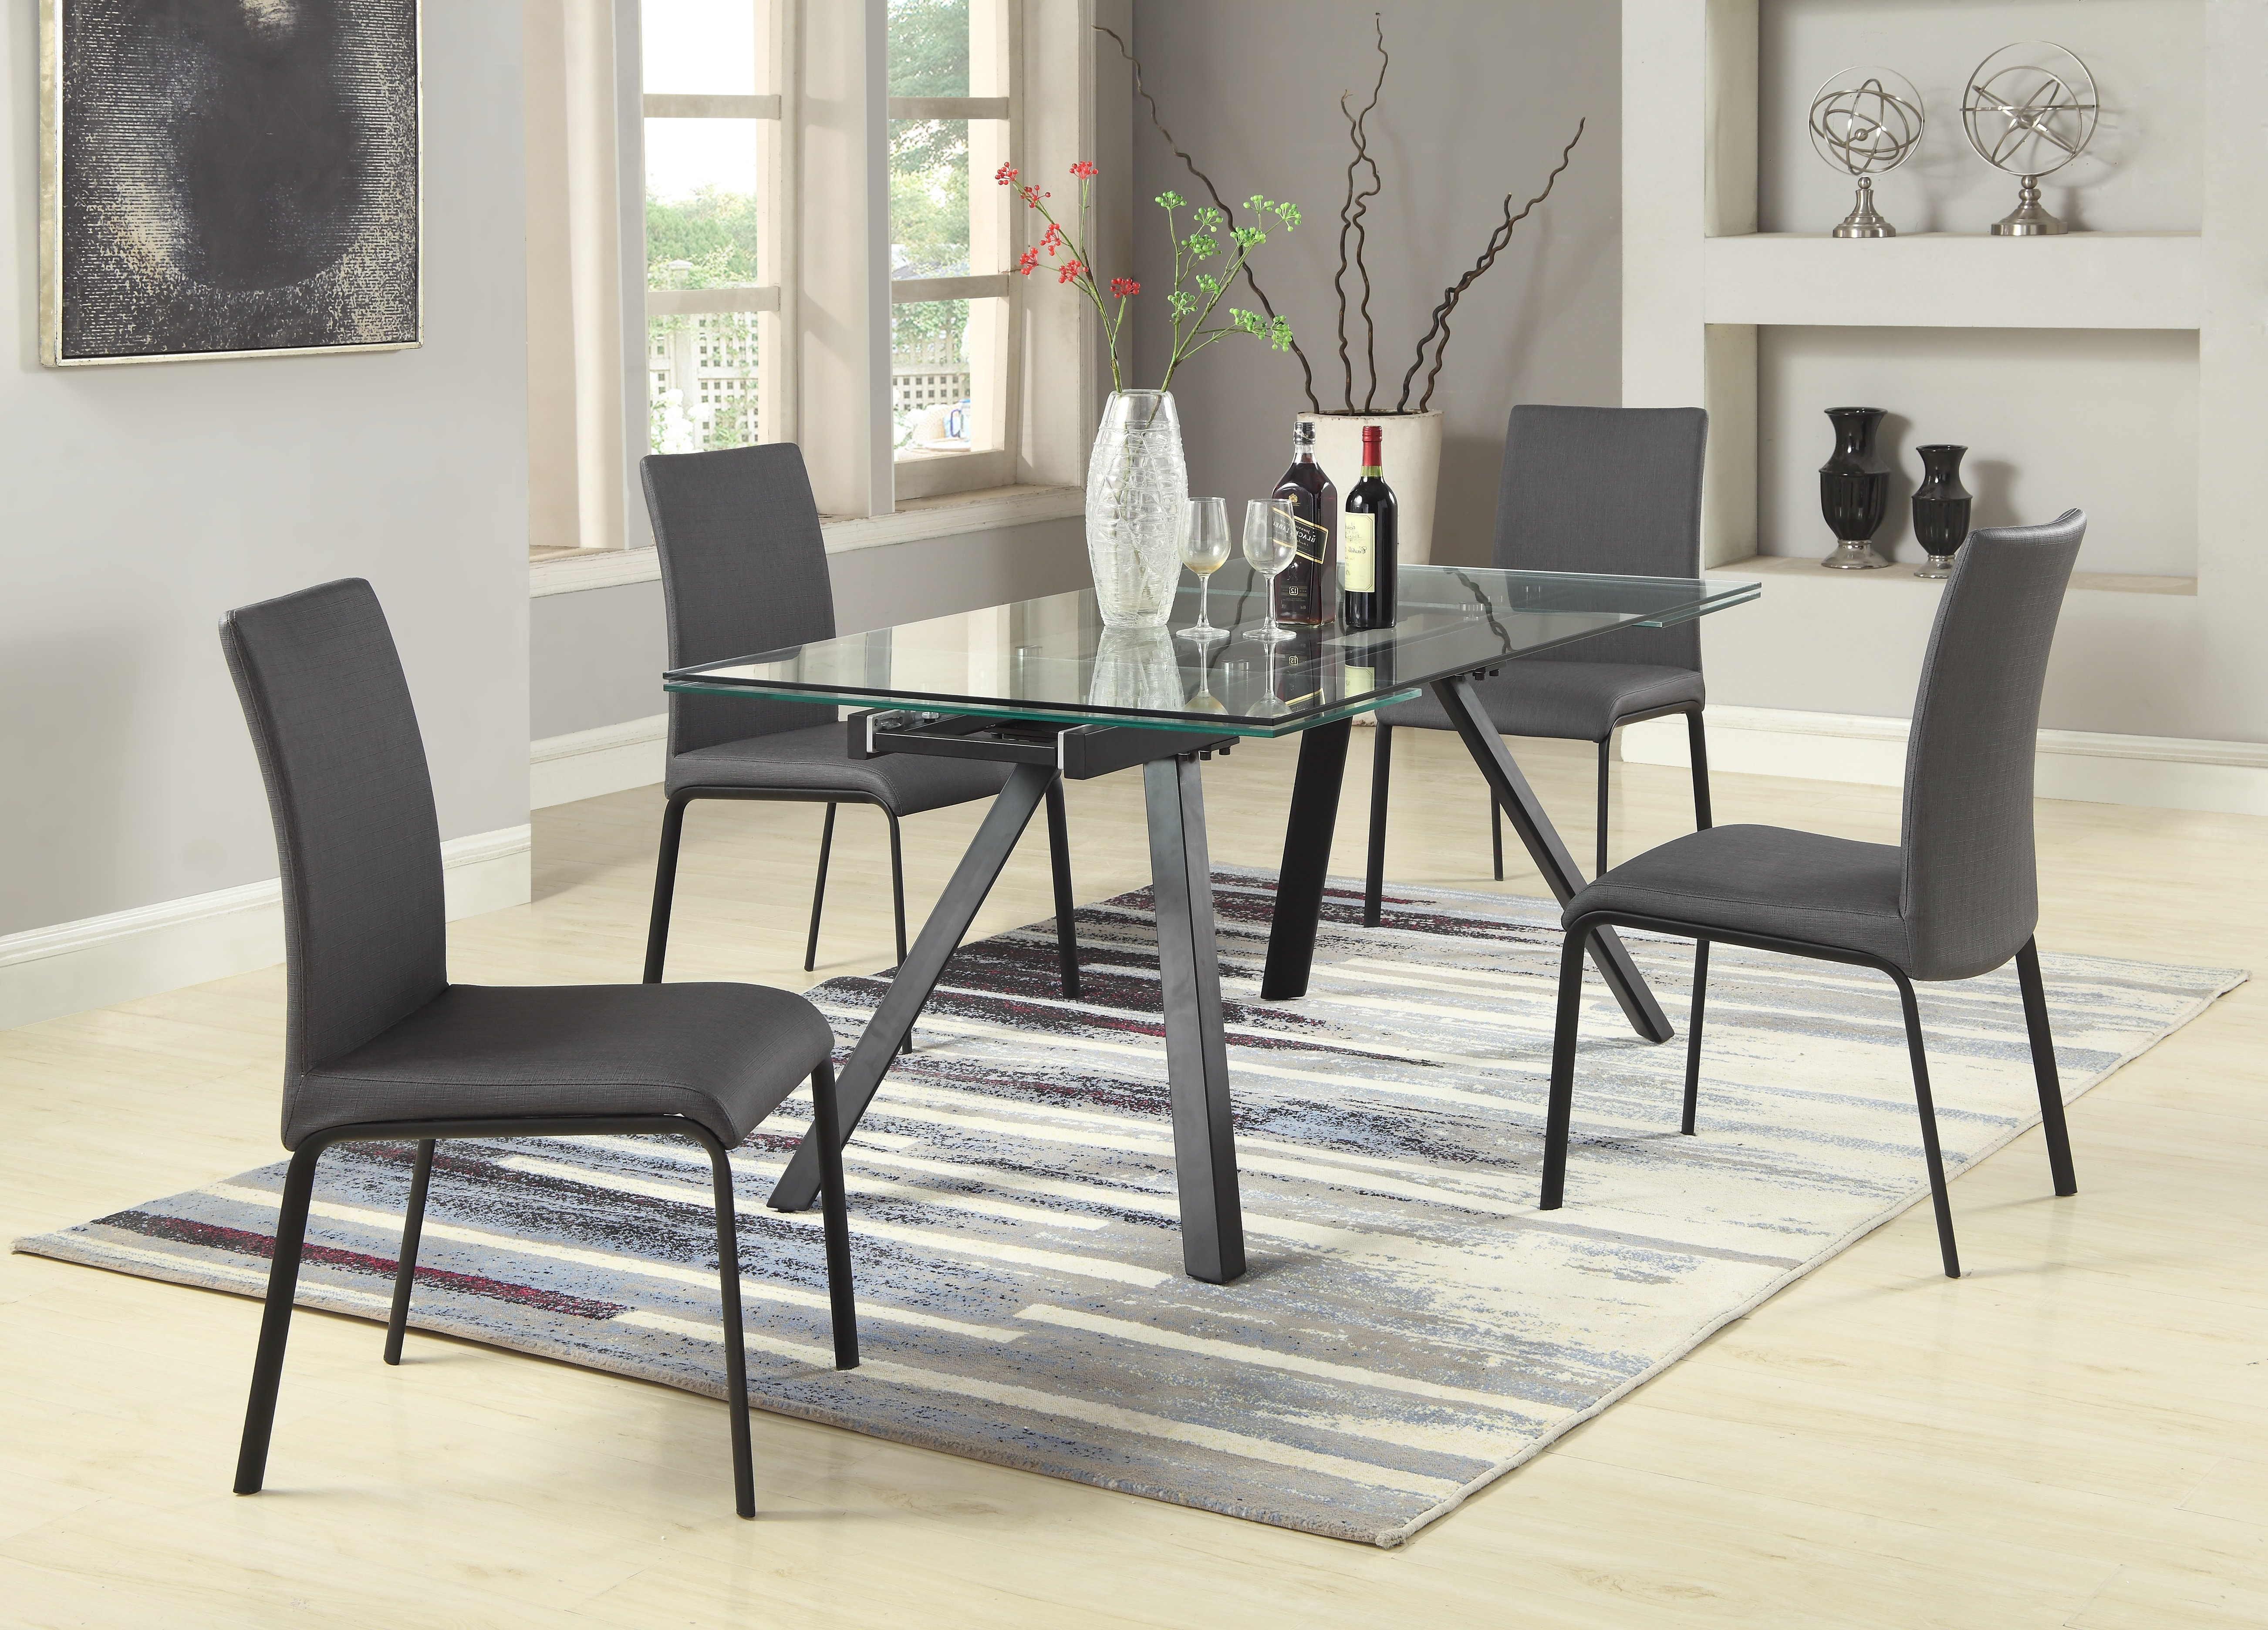 Middleport 5 Piece Dining Sets For Most Recently Released Julianne 5 Piece Extendable Dining Set (View 11 of 20)